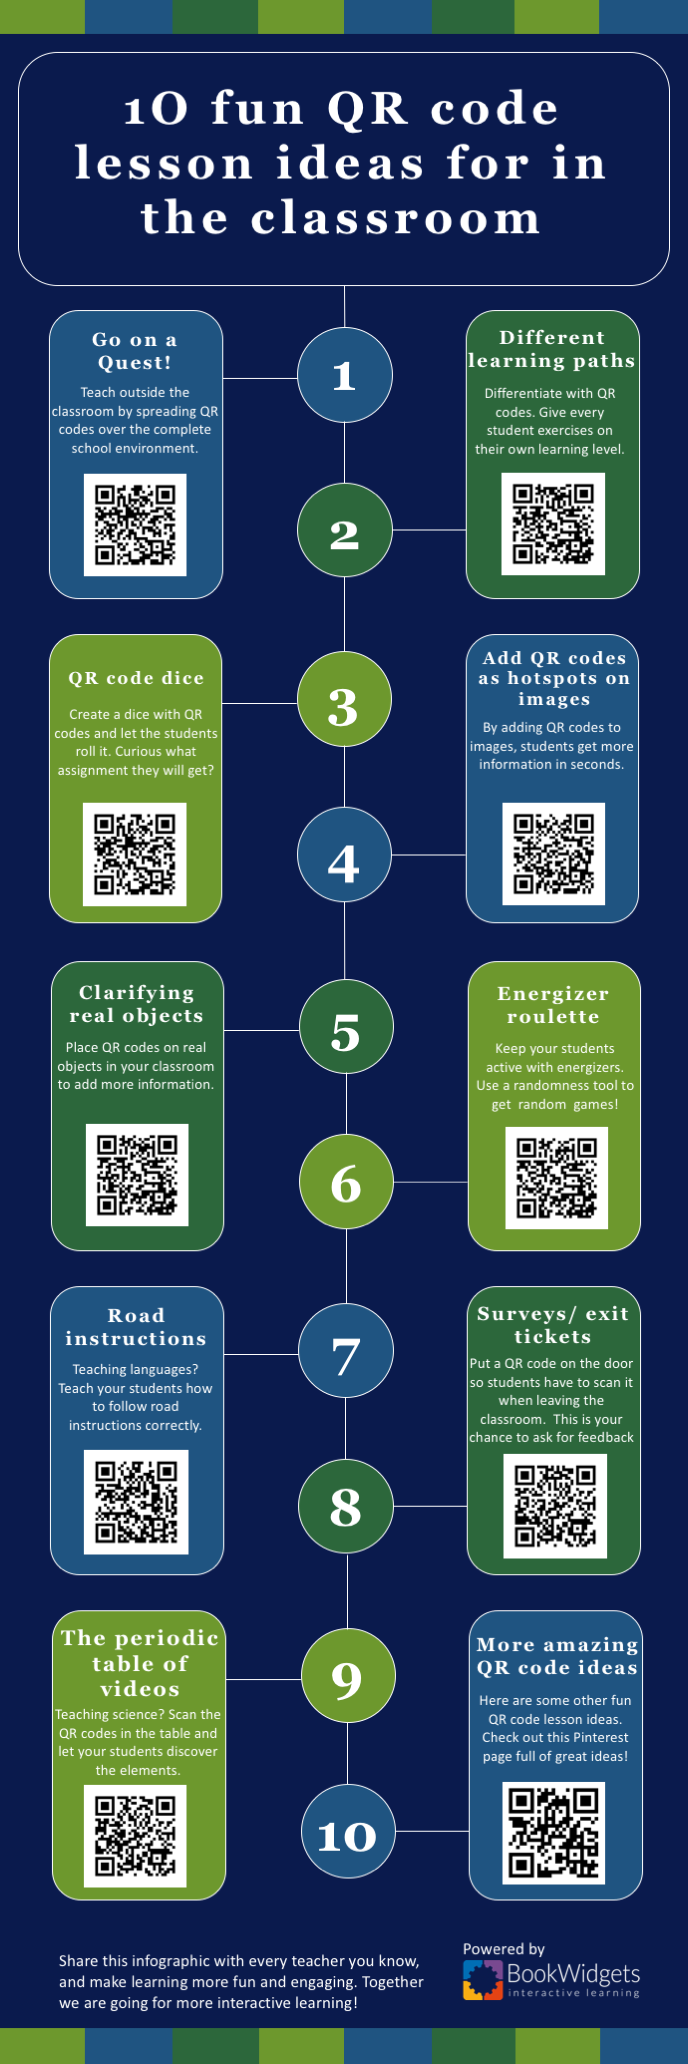 Lesson ideas with QR codes